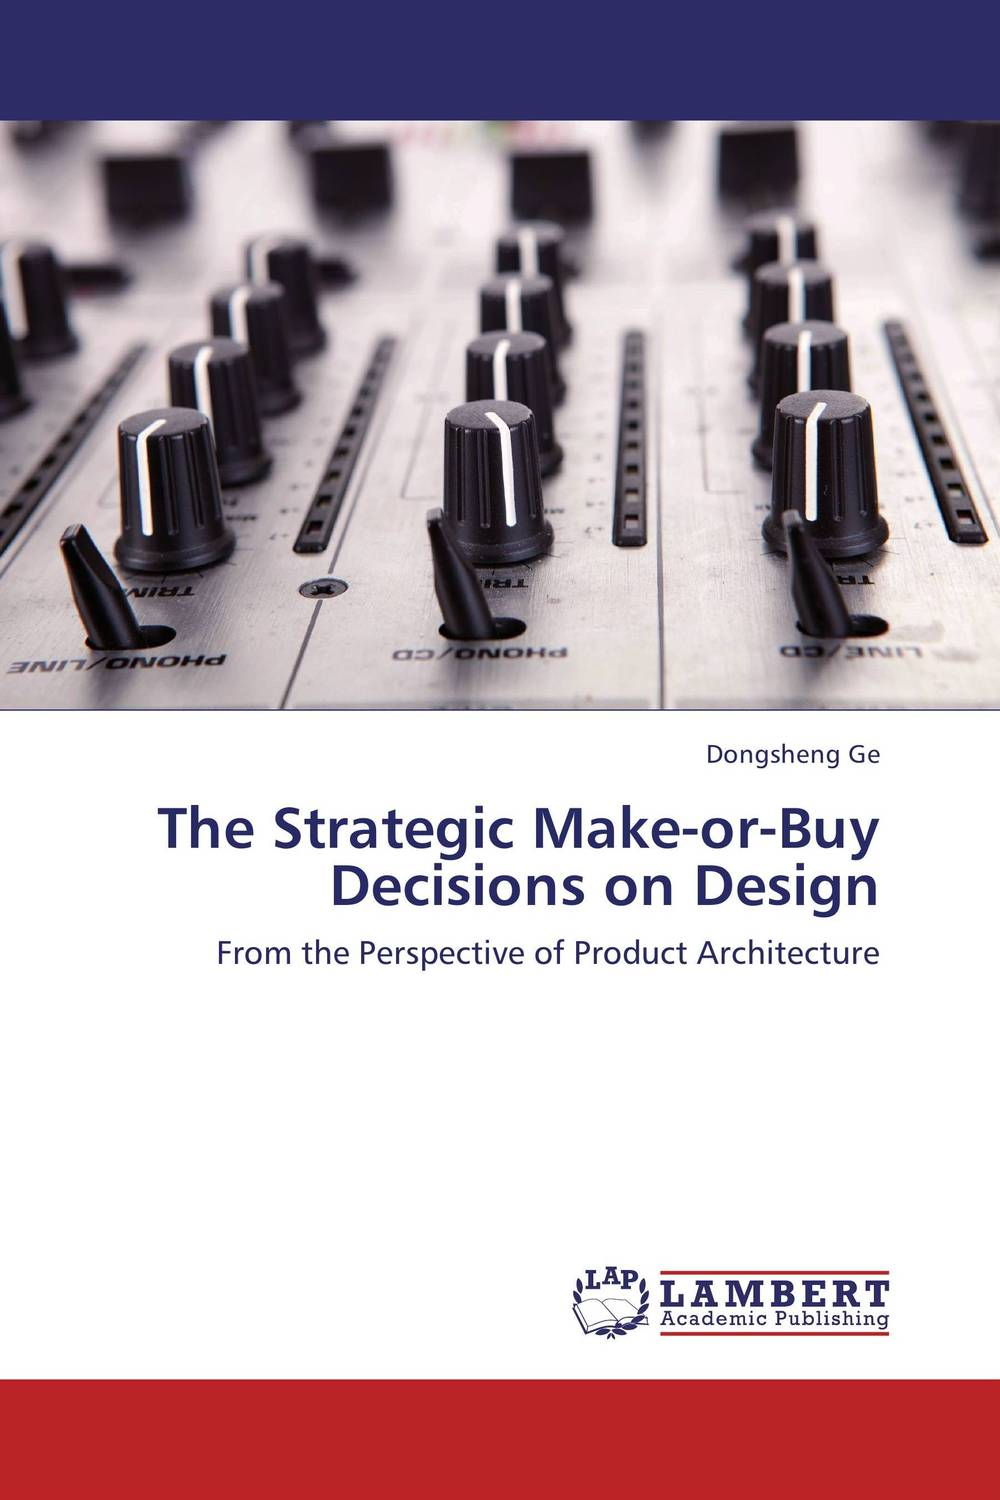 The Strategic Make-or-Buy Decisions on Design